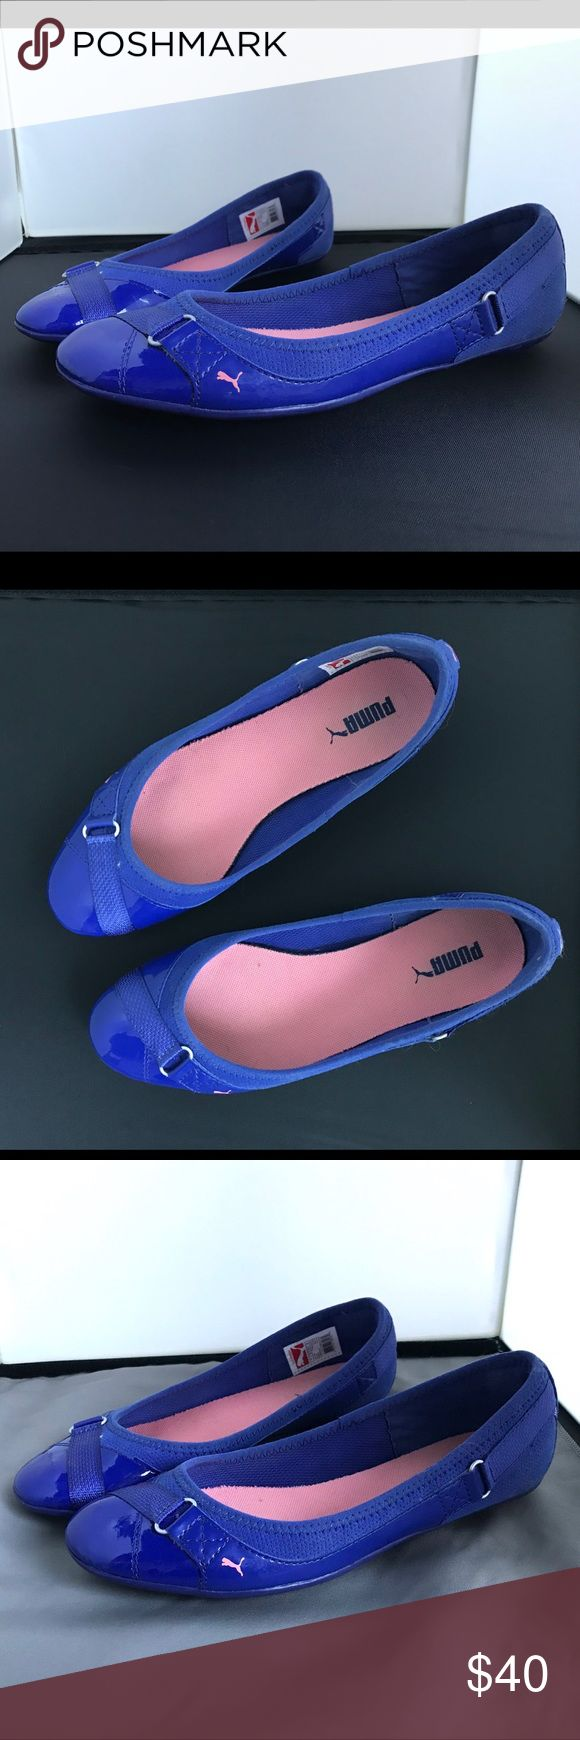 PUMA Bixley Glamm shoes Women's 8.5 Never worn, incredibly comfortable flats. I have them in a bunch of colors, but this blue is just a bit too vivid for my wardrobe palette. Color: Clematis Blue/Salmon Rose. Puma Shoes Flats & Loafers